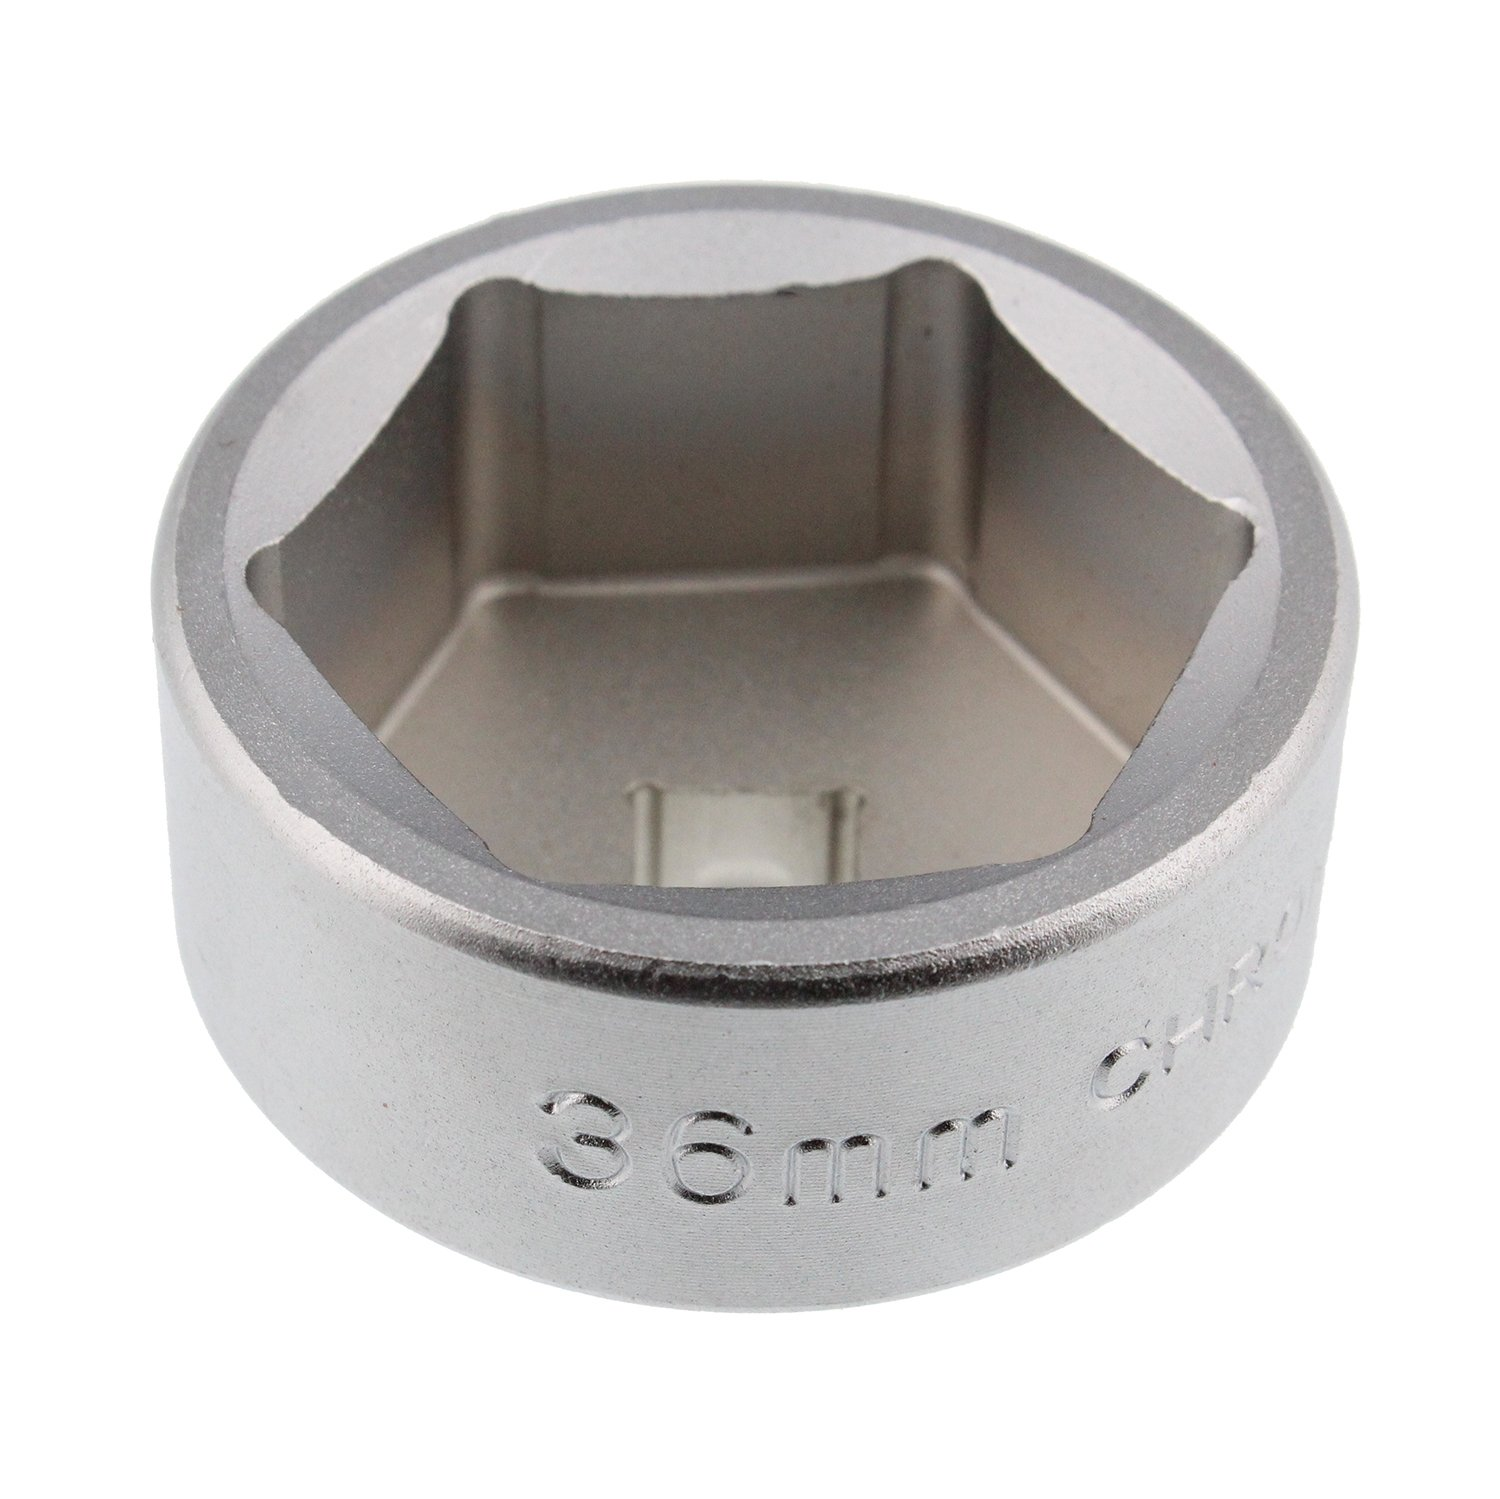 ABN Oil Filter Wrench – 36mm Metric, Low Profile, CRV Steel – Socket Tool to Remove Cartridge Style Housing Canister Cap